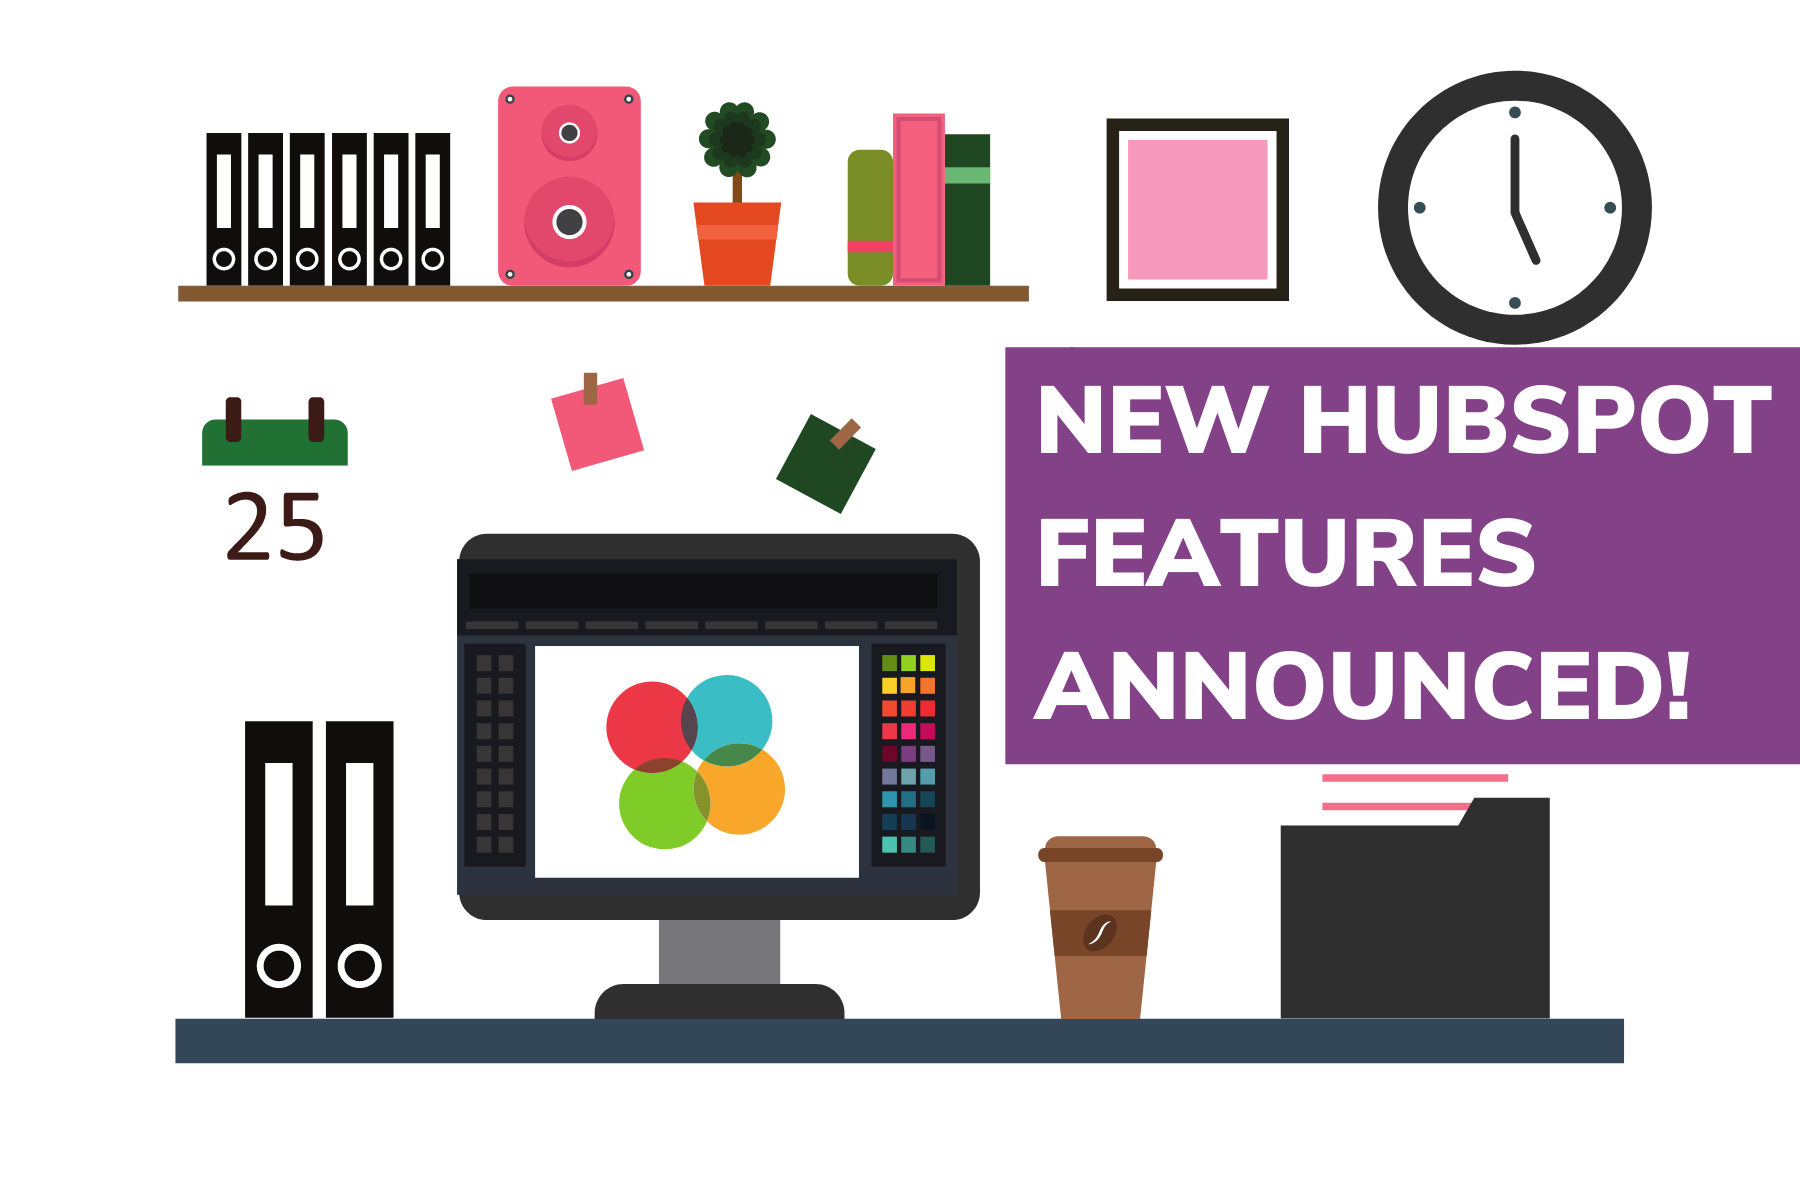 New HubSpot features announced!